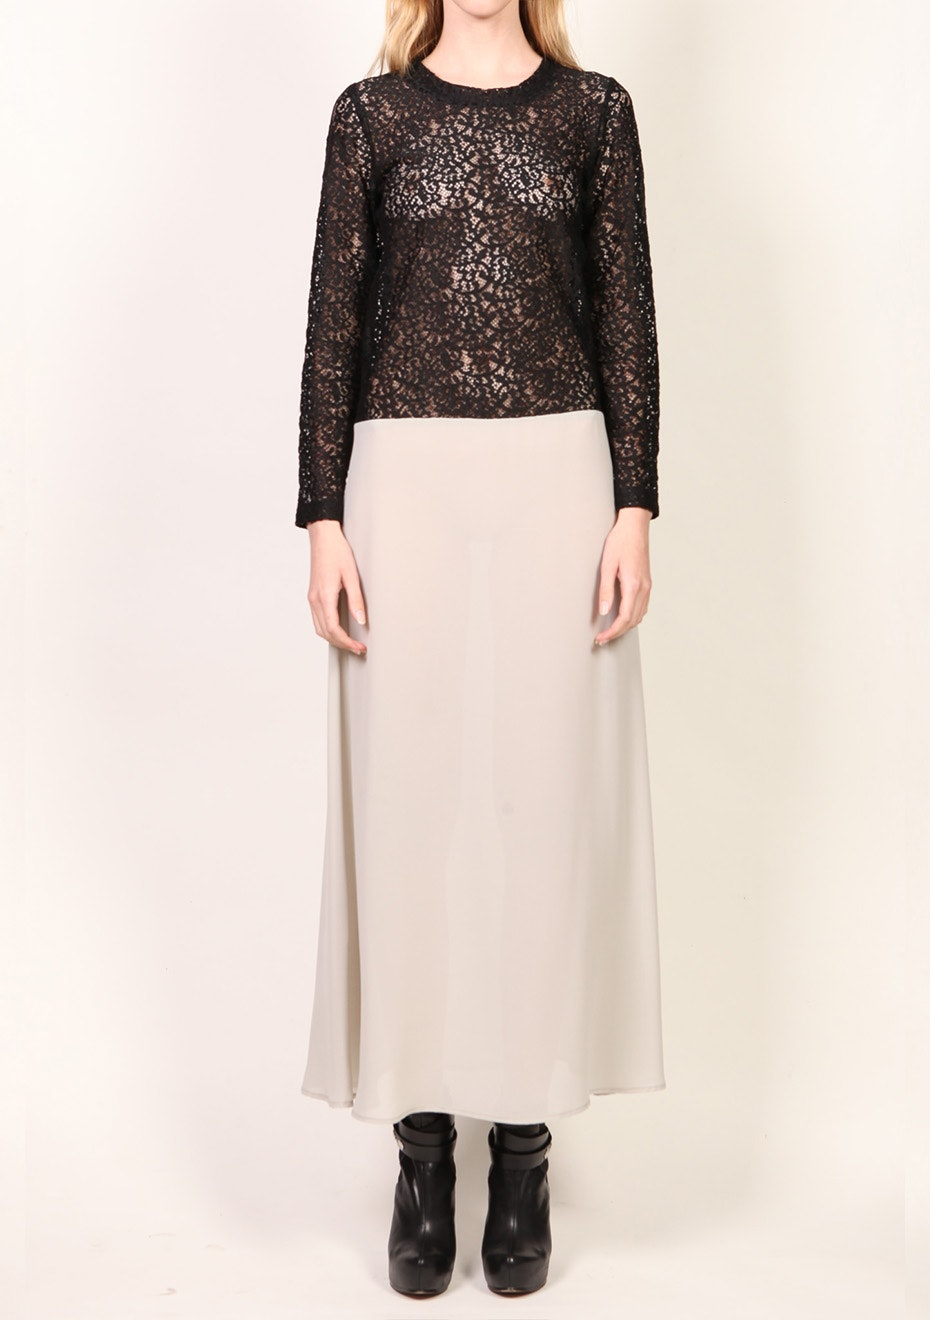 X-Plain - Long sleeve Lace Dress - Black/Grey